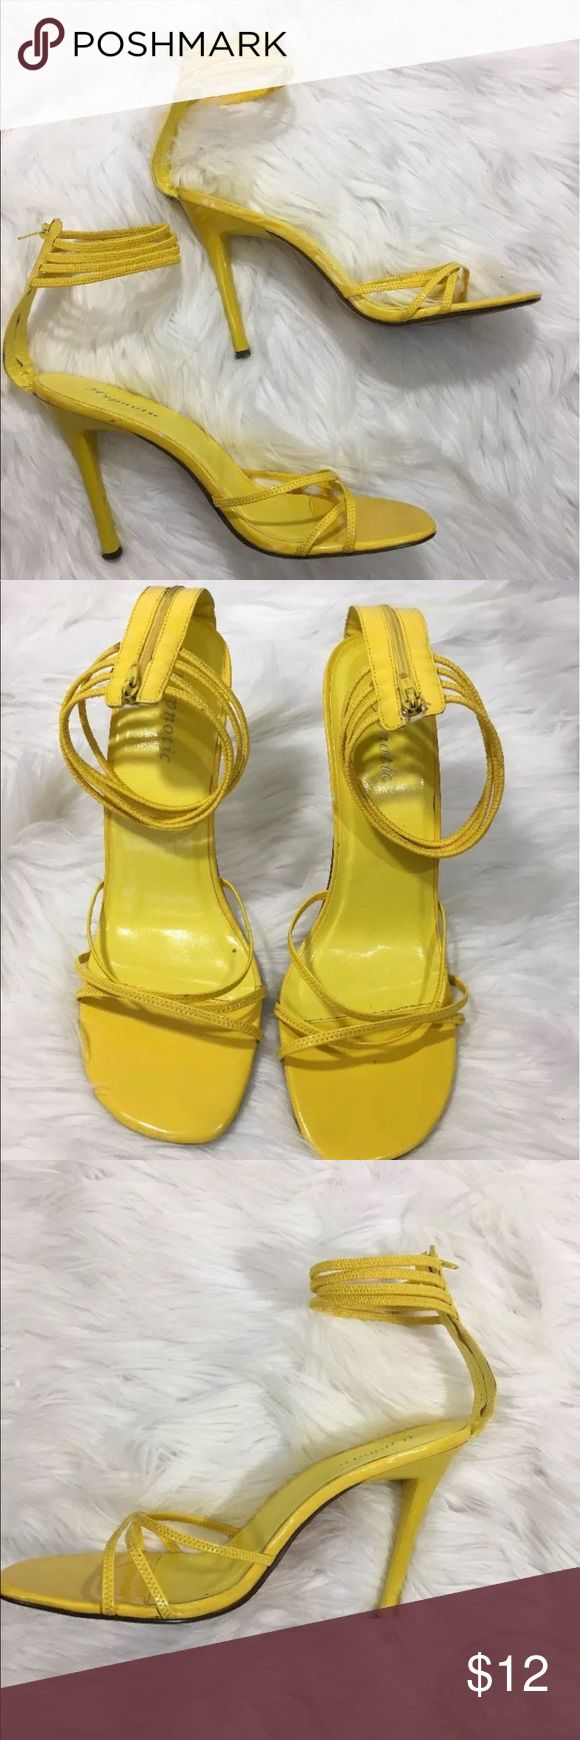 Strappy Heels Pre-owned. Yellow. Straps around ankles and toes. Zipper in back. 4.5 inch heel. Scuffed on left heel. Peeling on back of right heel under zipper (not visible when wearing). See pics Hypnotic Shoes Sandals